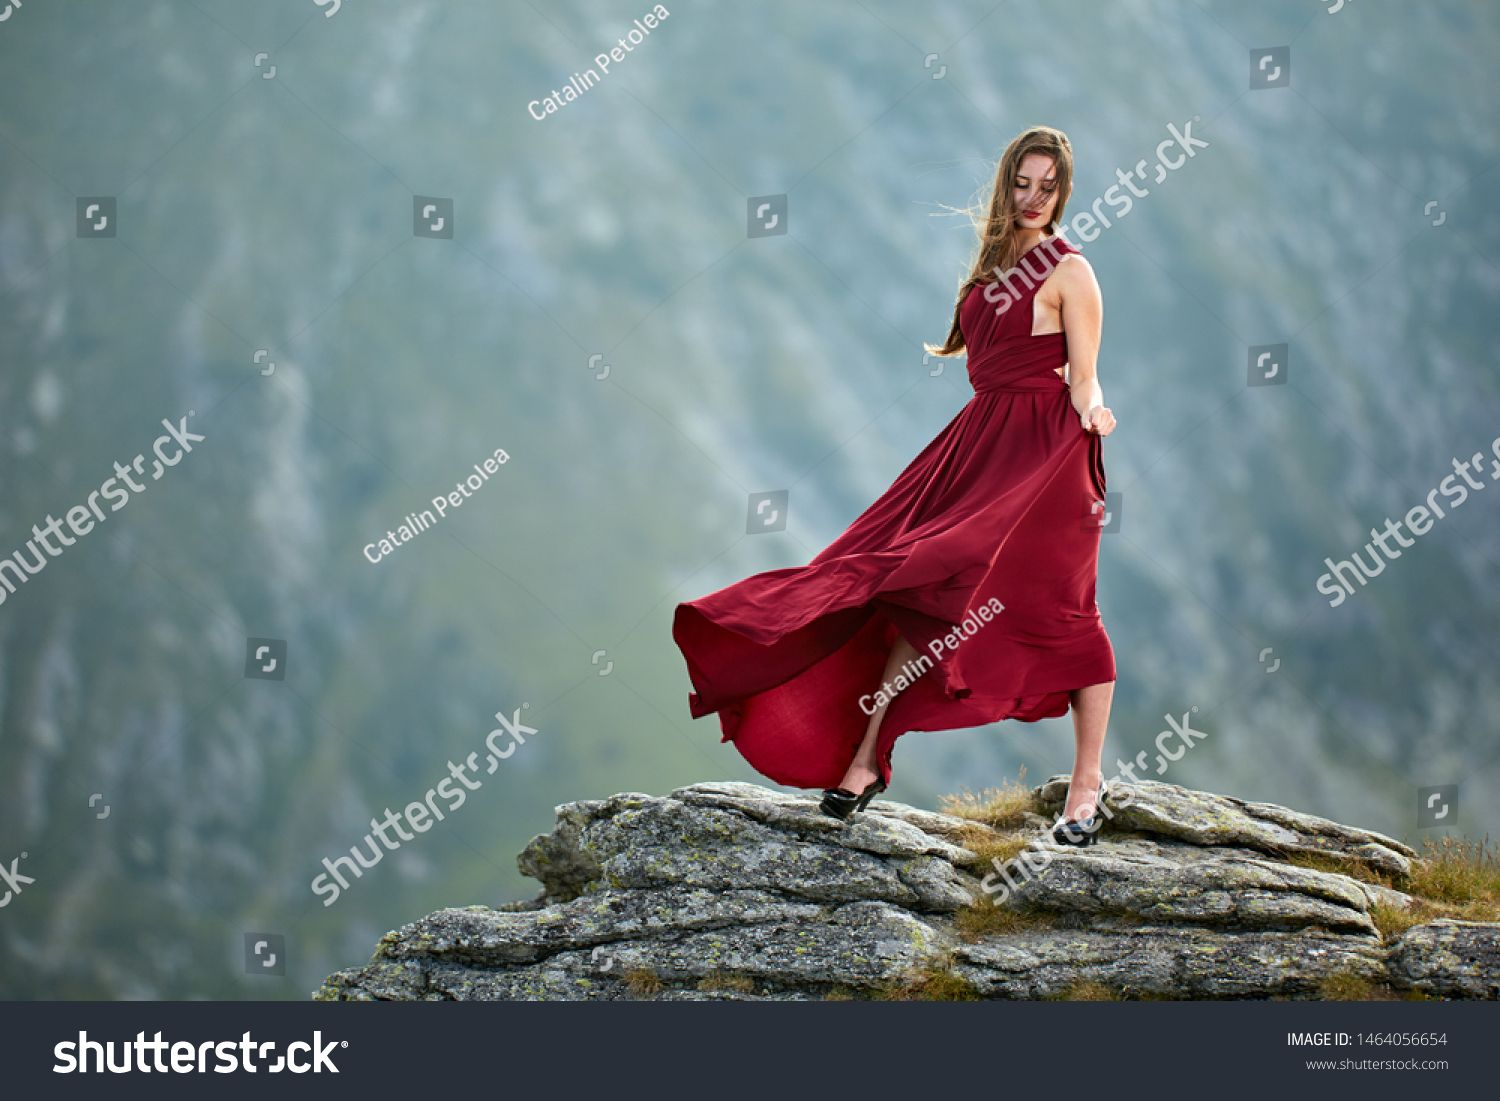 Beautiful female fashion model in red dress on mountain rocks #Sponsored , #affiliate, #fashion#model#Beautiful#female